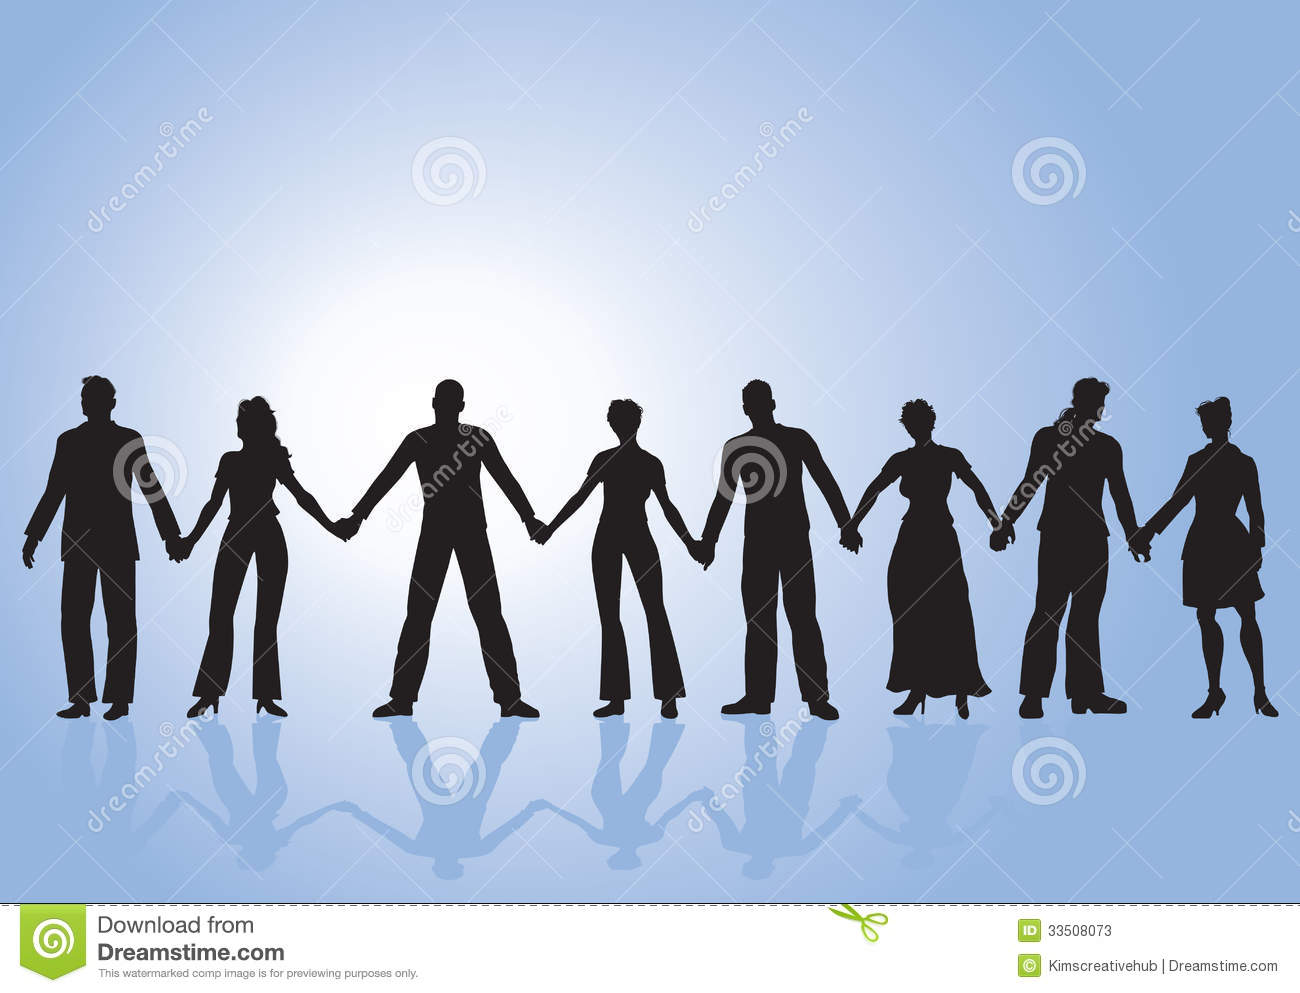 Group Of People Holding Hands Stock Photos - Image: 33508073